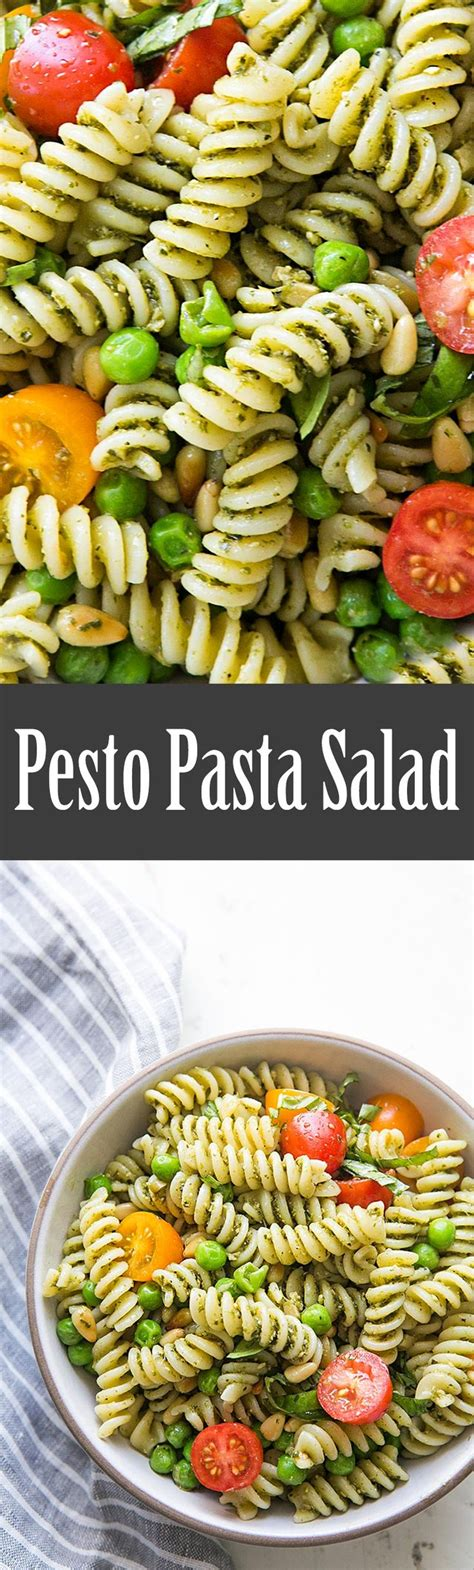 cold pasta salad ideas best 20 pesto pasta salad ideas on pinterest pesto